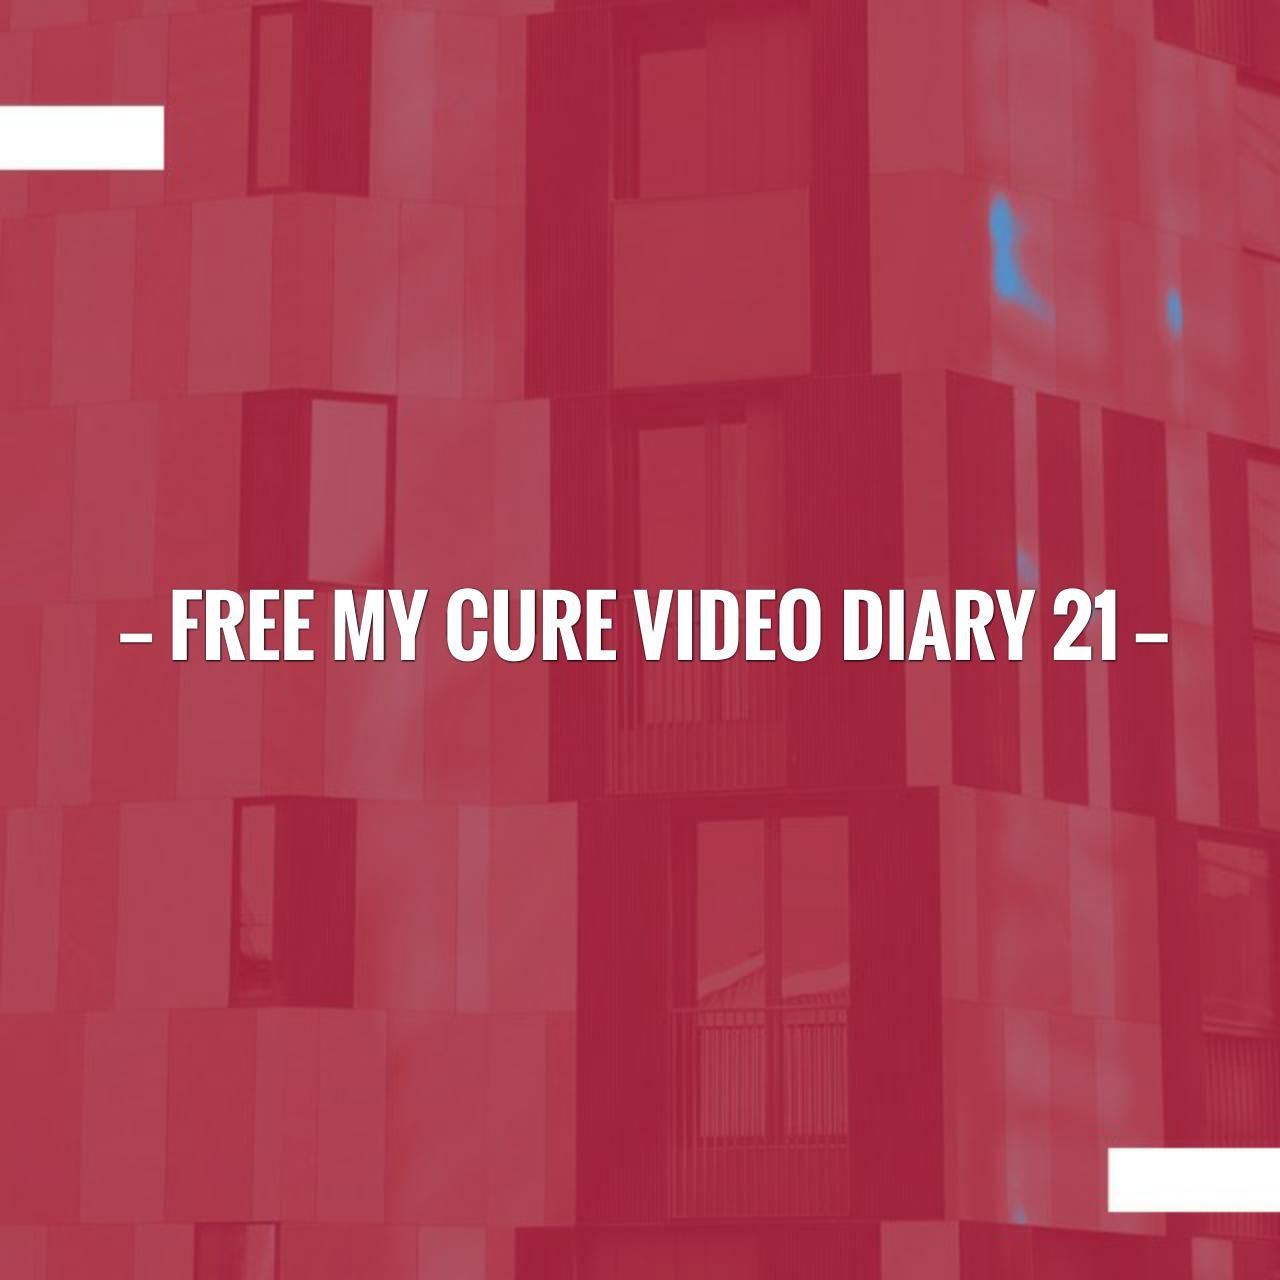 Friends A Shiny Blogpost Is Here Free My Cure Video Diary 21 Https